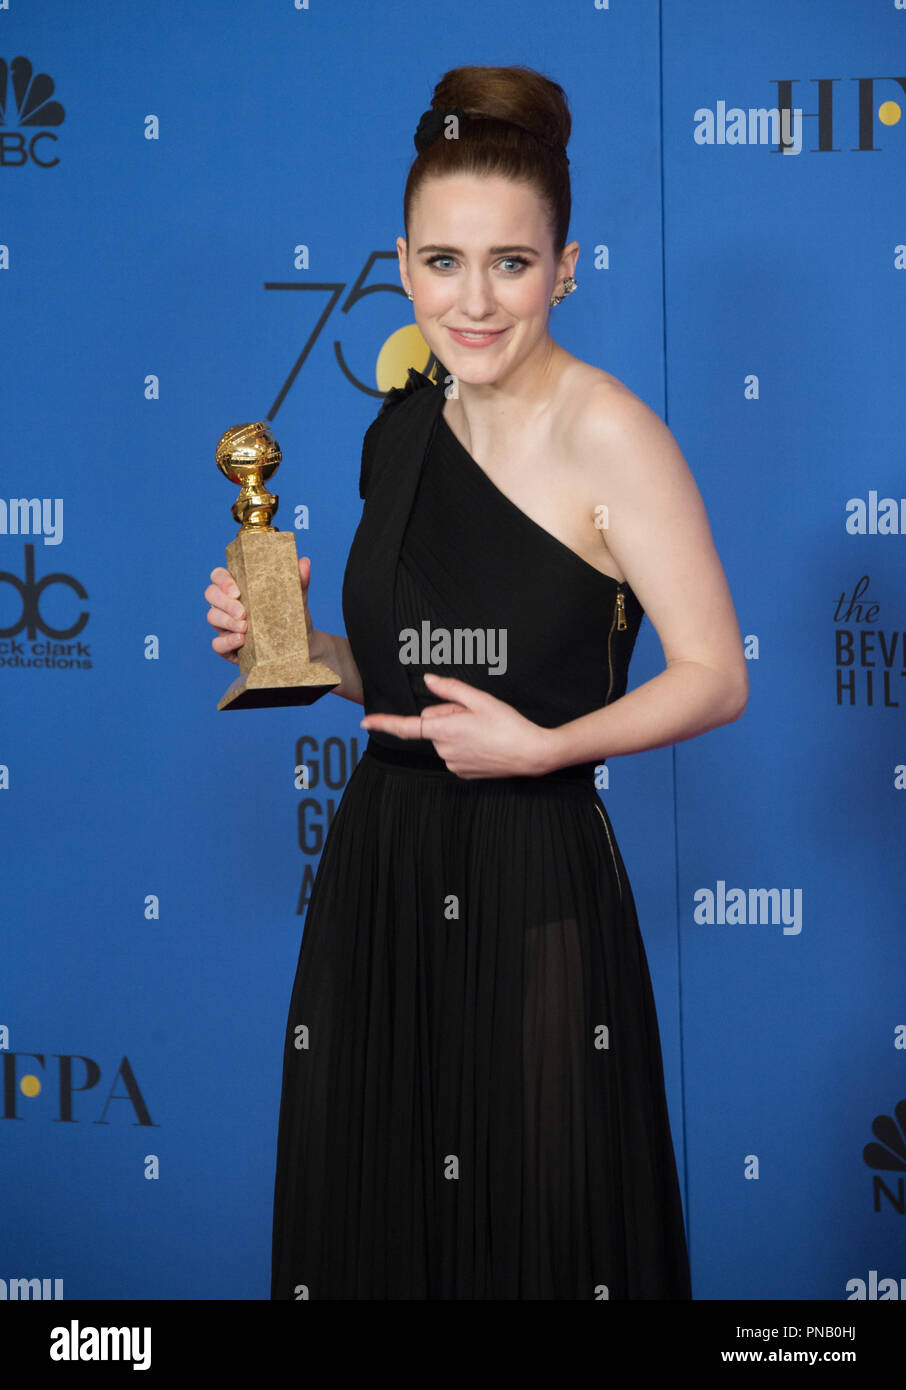 """After winning the category of BEST PERFORMANCE BY AN ACTRESS IN A TELEVISION SERIES – COMEDY OR MUSICAL for her role in """"The Marvelous Mrs. Maisel,"""" actress Rachel Brosnahan poses backstage in the press room with her Golden Globe Award at the 75th Annual Golden Globe Awards at the Beverly Hilton in Beverly Hills, CA on Sunday, January 7, 2018. Stock Photo"""